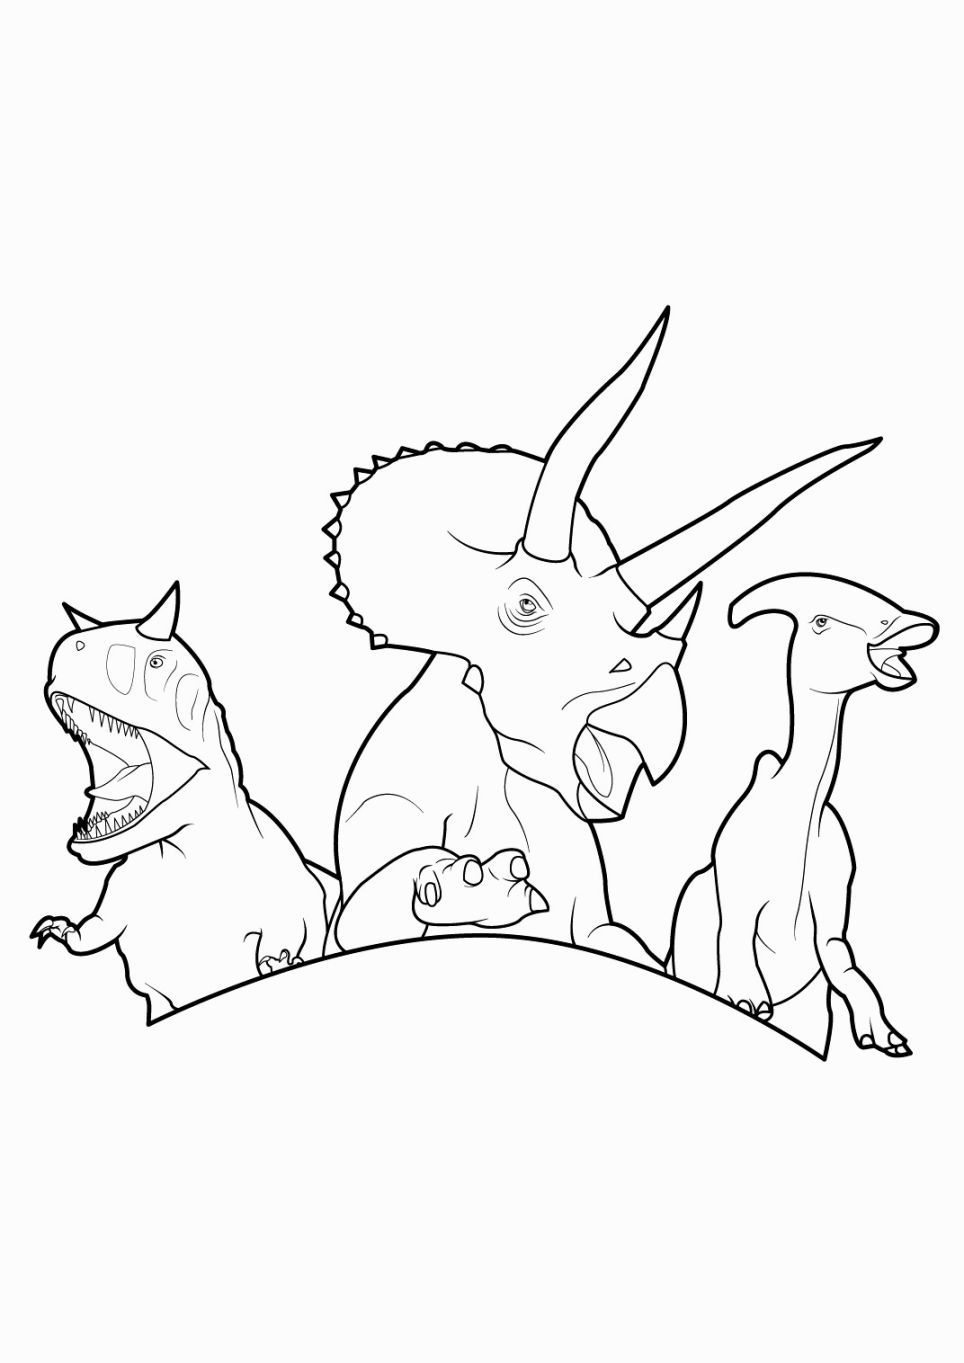 Dinosaur King Coloring Pages | Dinosaur Coloring Pages avec Dinausore Coloriage